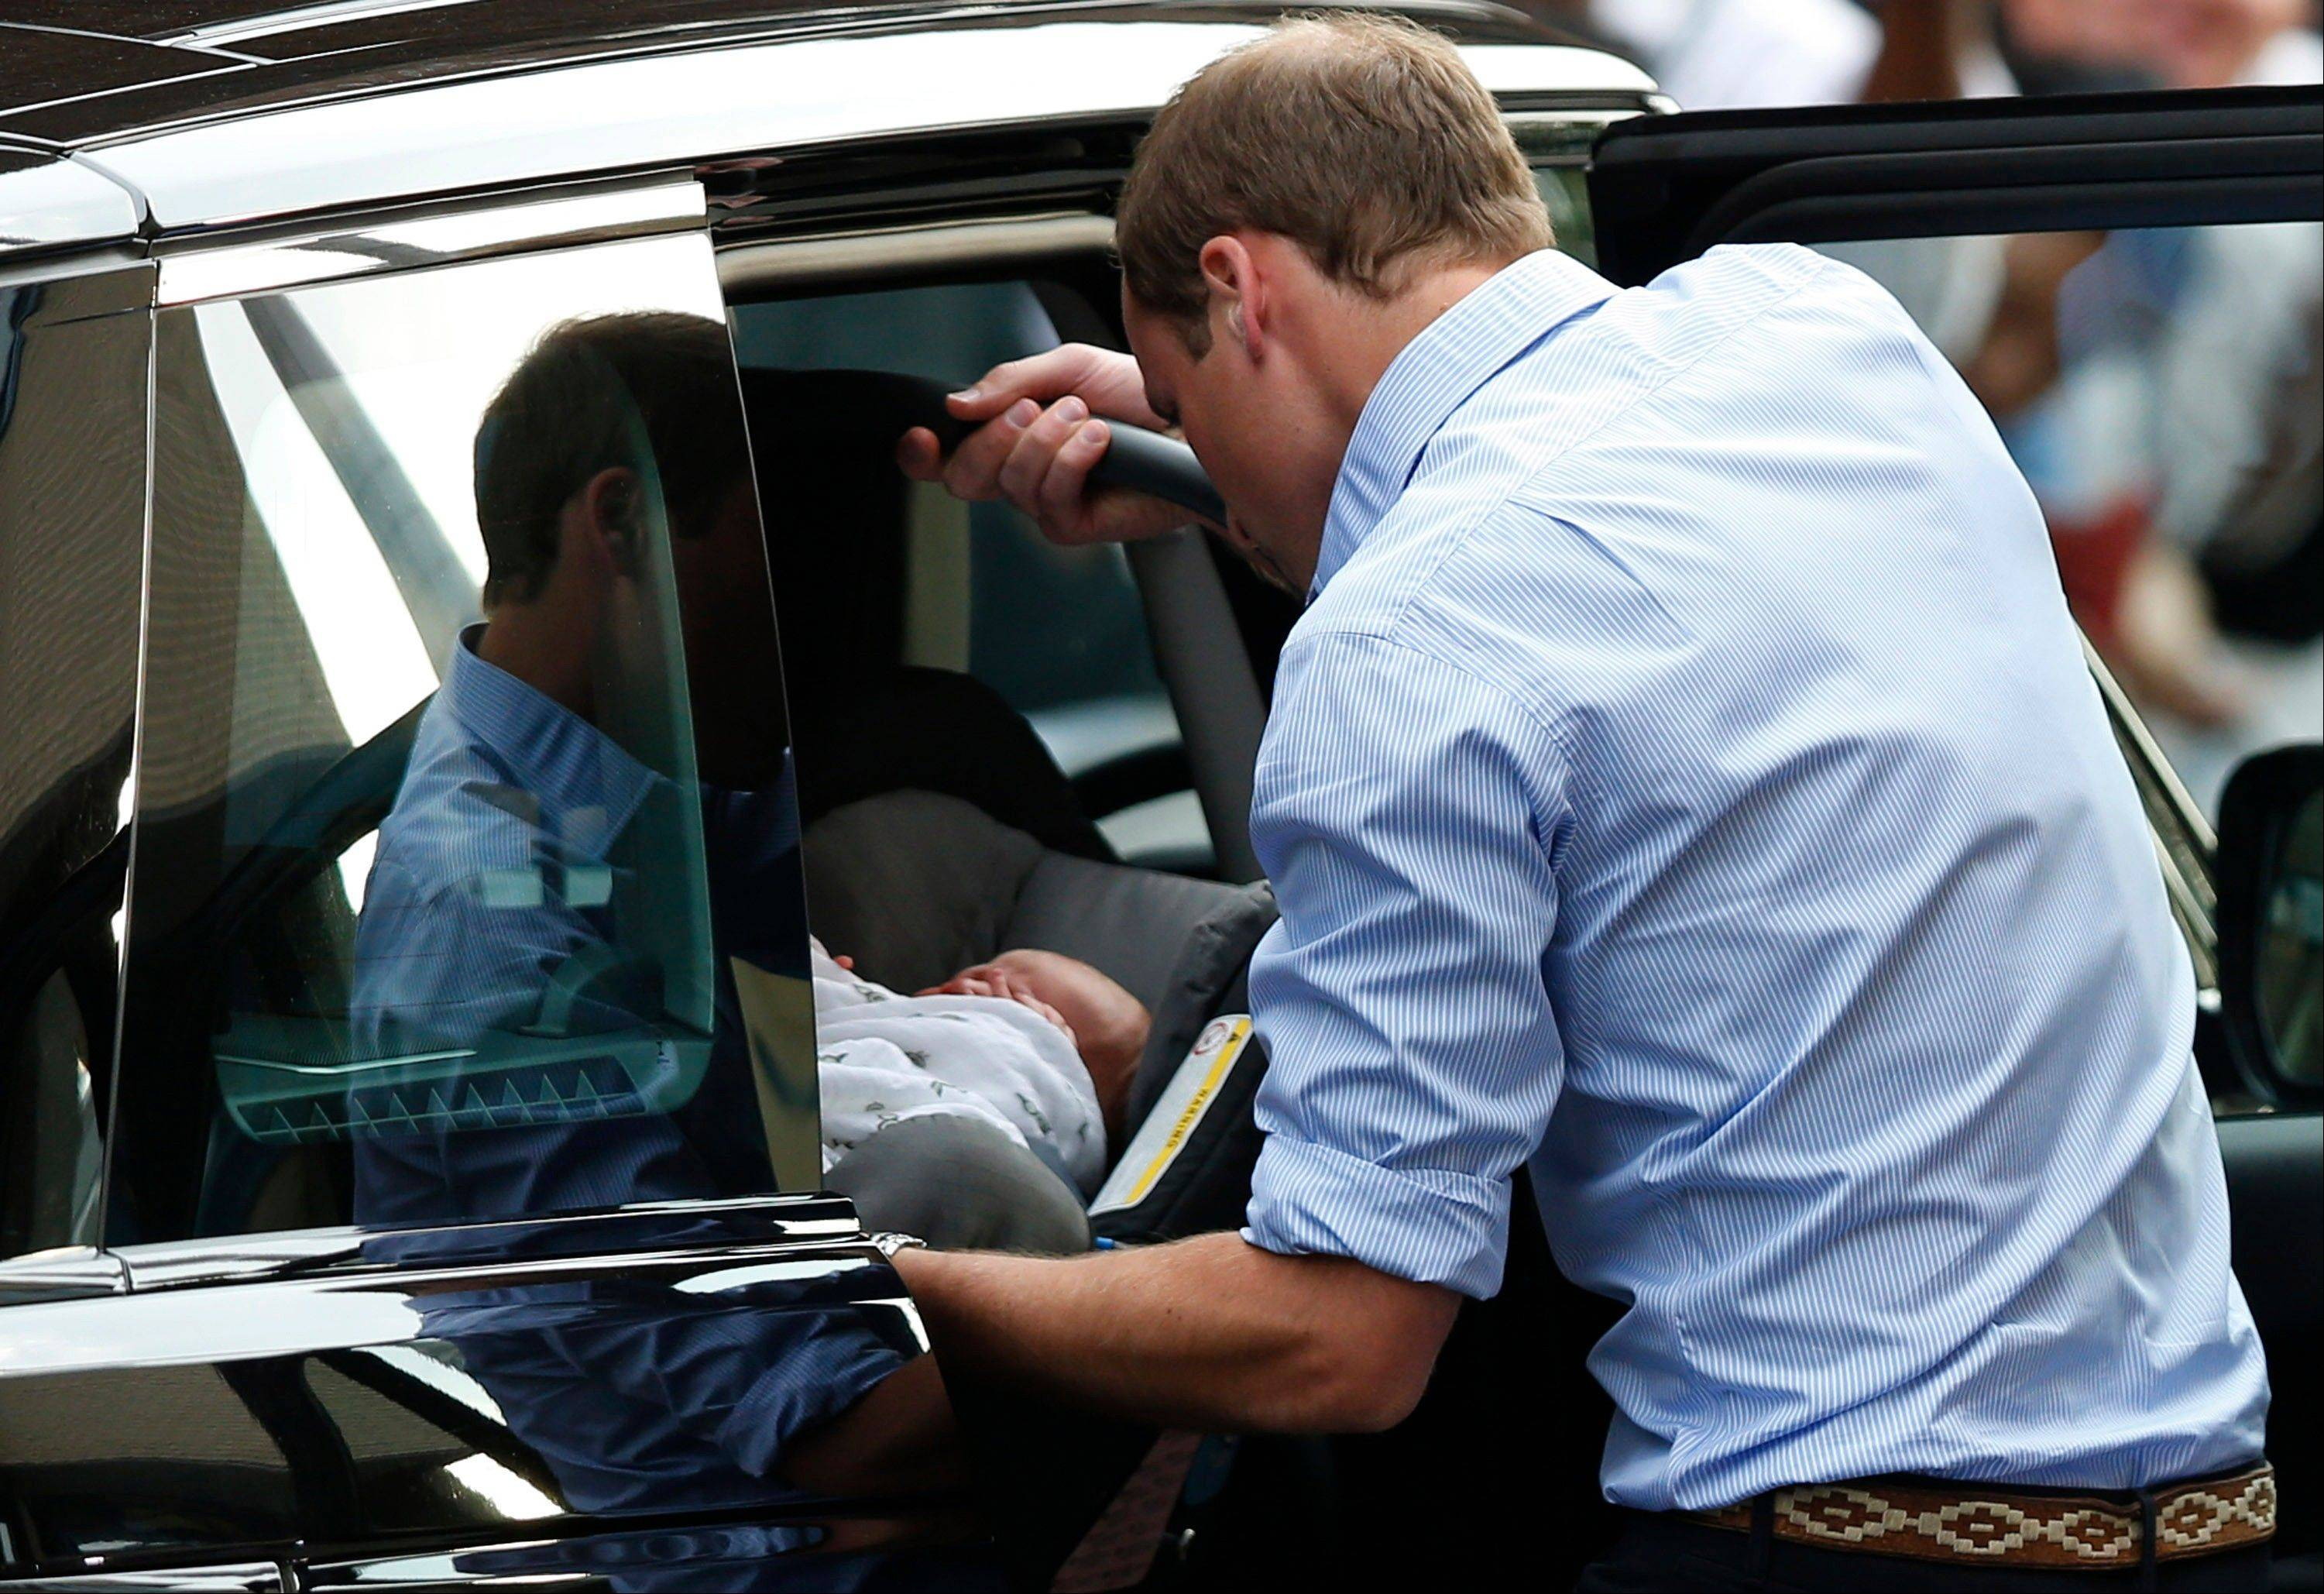 Britain's Prince William places carefully the Prince of Cambridge into a car, Tuesday July 23, 2013, as they leave St. Mary's Hospital exclusive Lindo Wing in London.